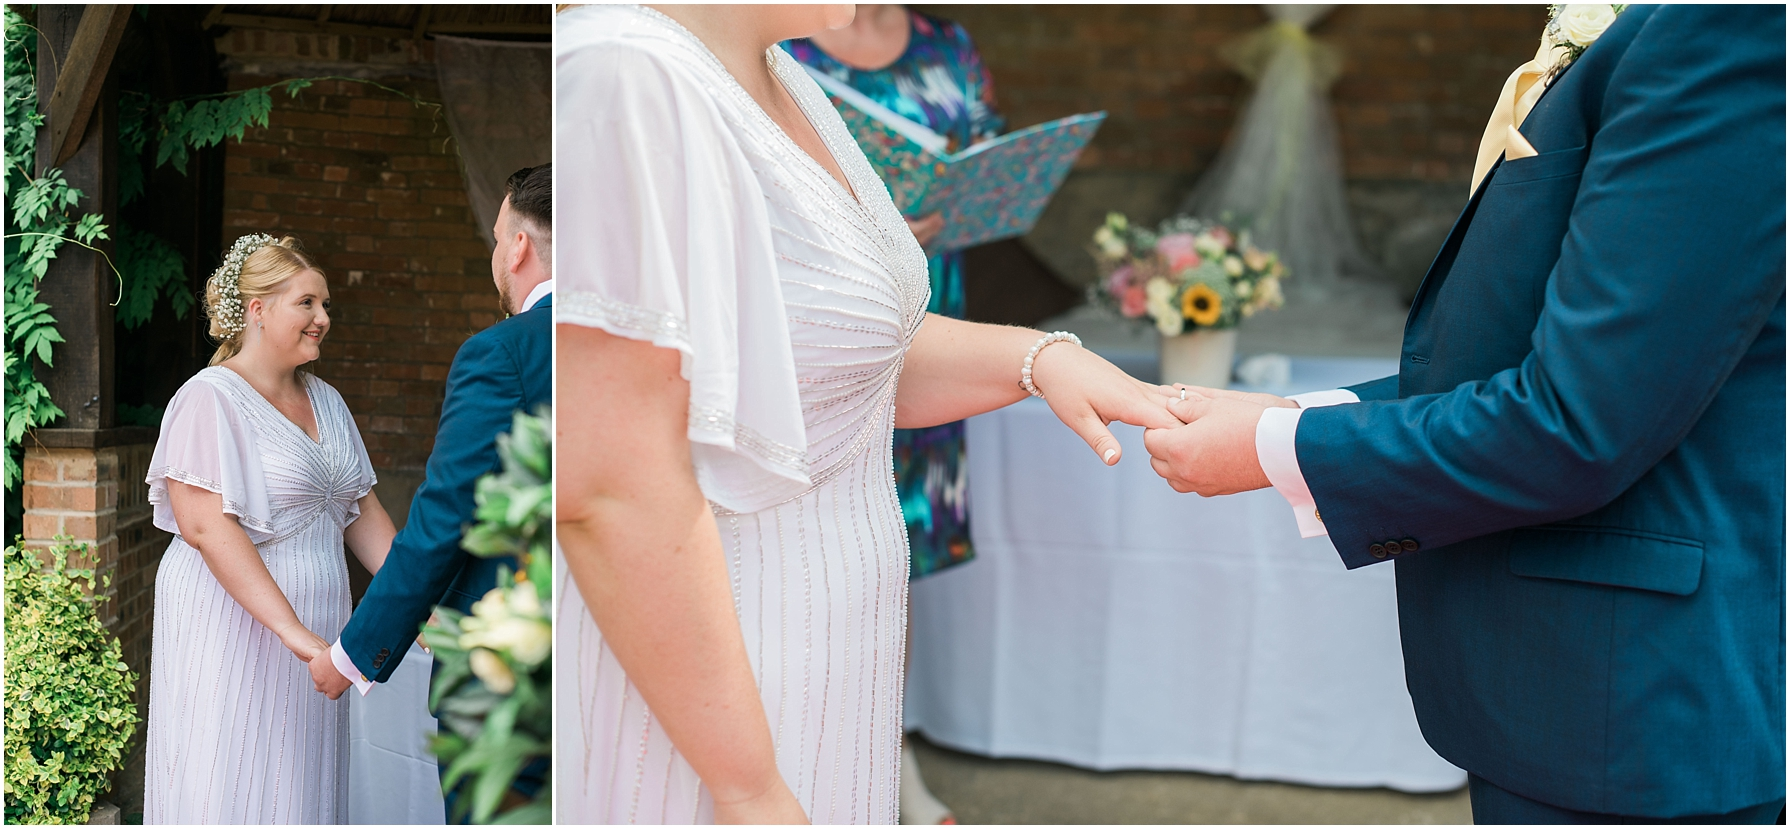 bride and groom exchanging rings in an outdoor ceremony at chiseldon house hotel